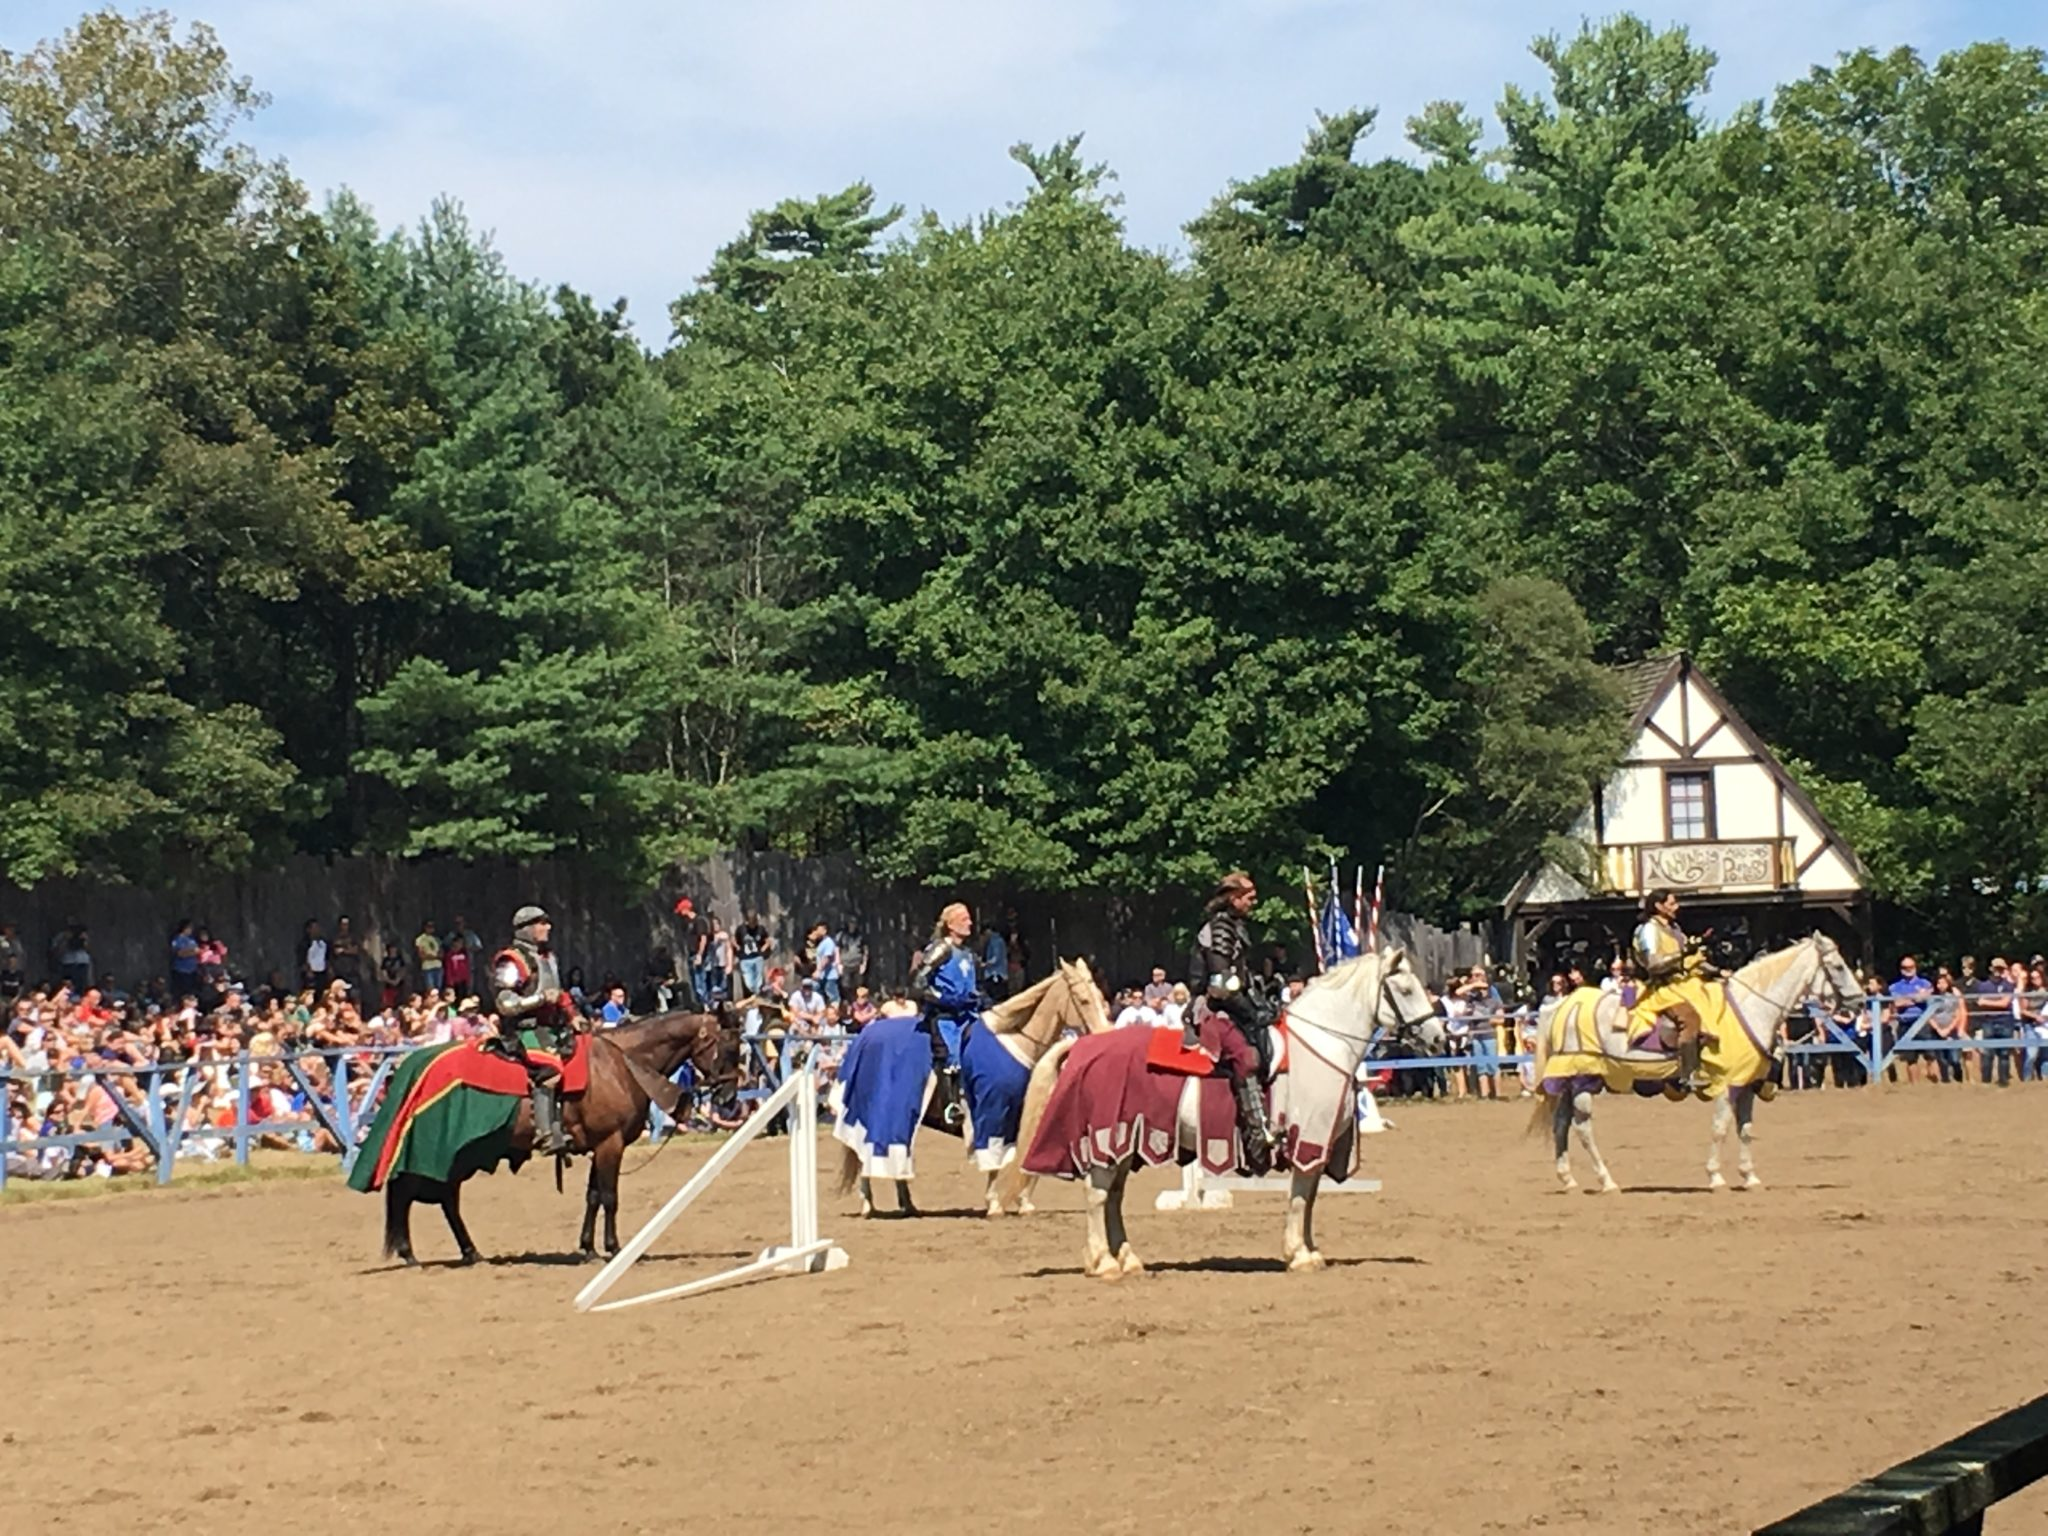 See a real life jousting show at King Richard's Faire!